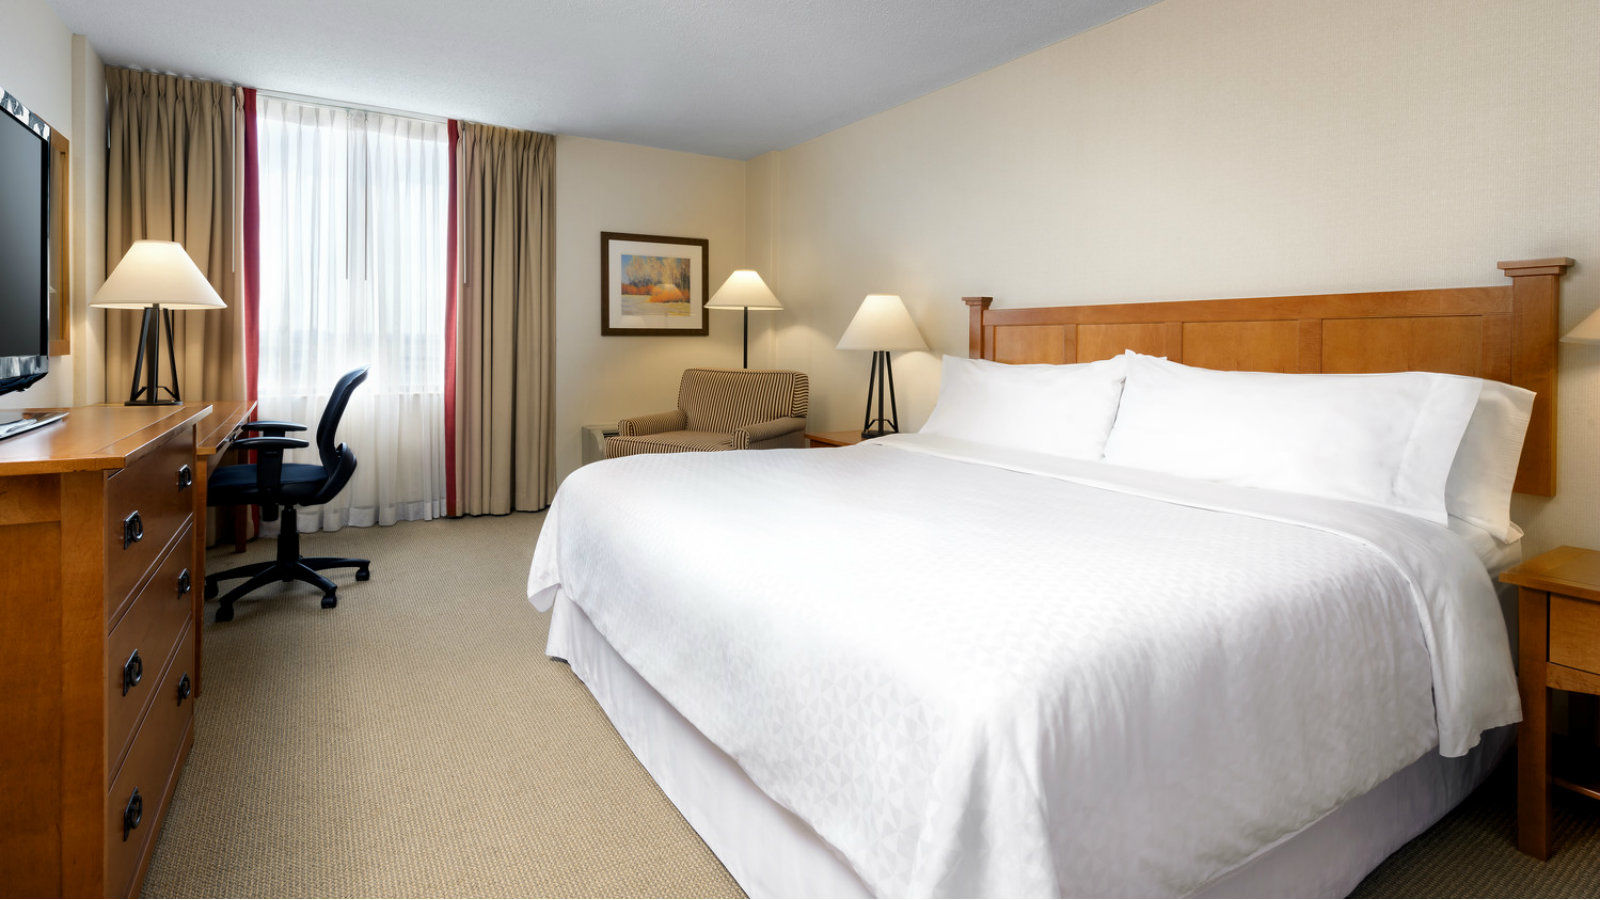 Toronto Accommodations - Queen Guest Room